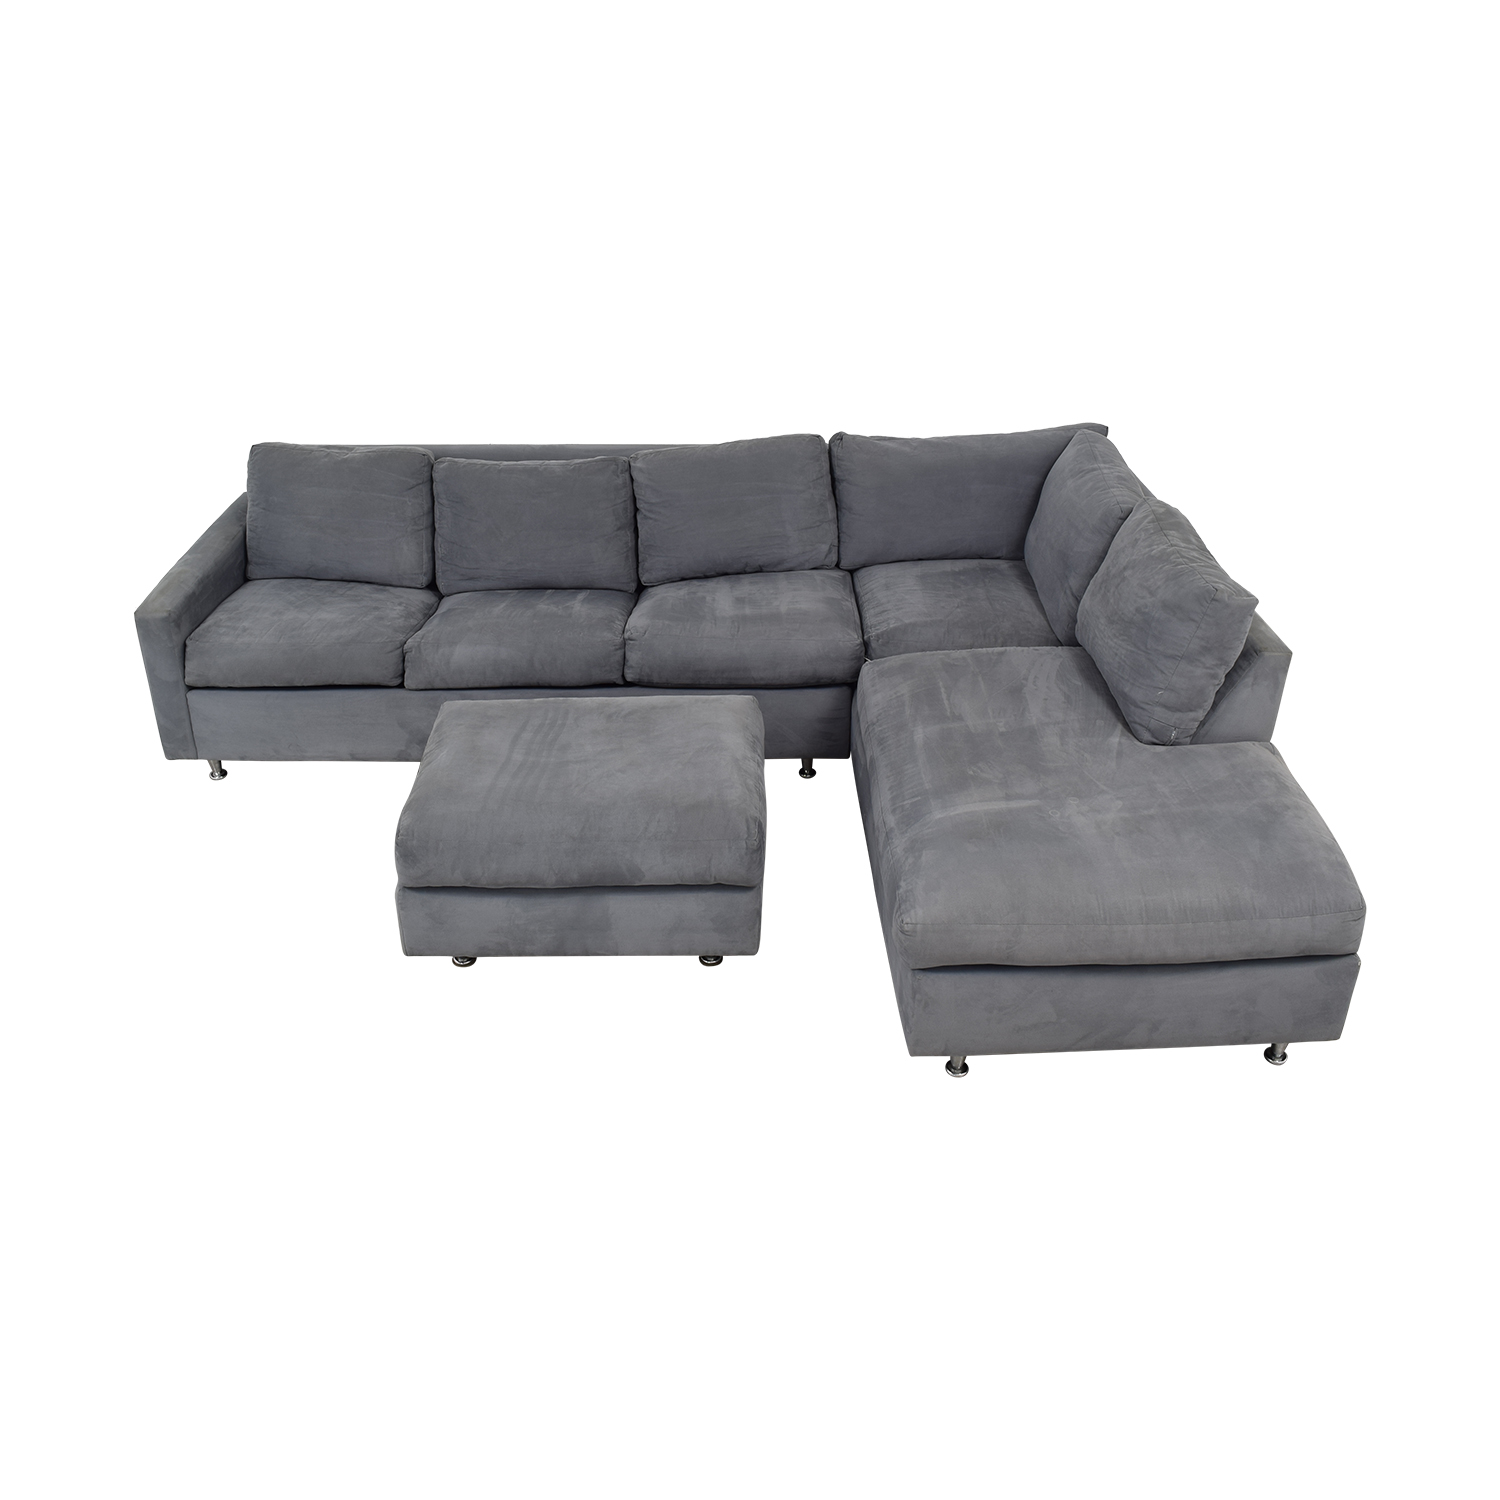 72 off jensen lewis jensen lewis grey ultrasuede chaise sectional with ottoman and queen convertible sofas